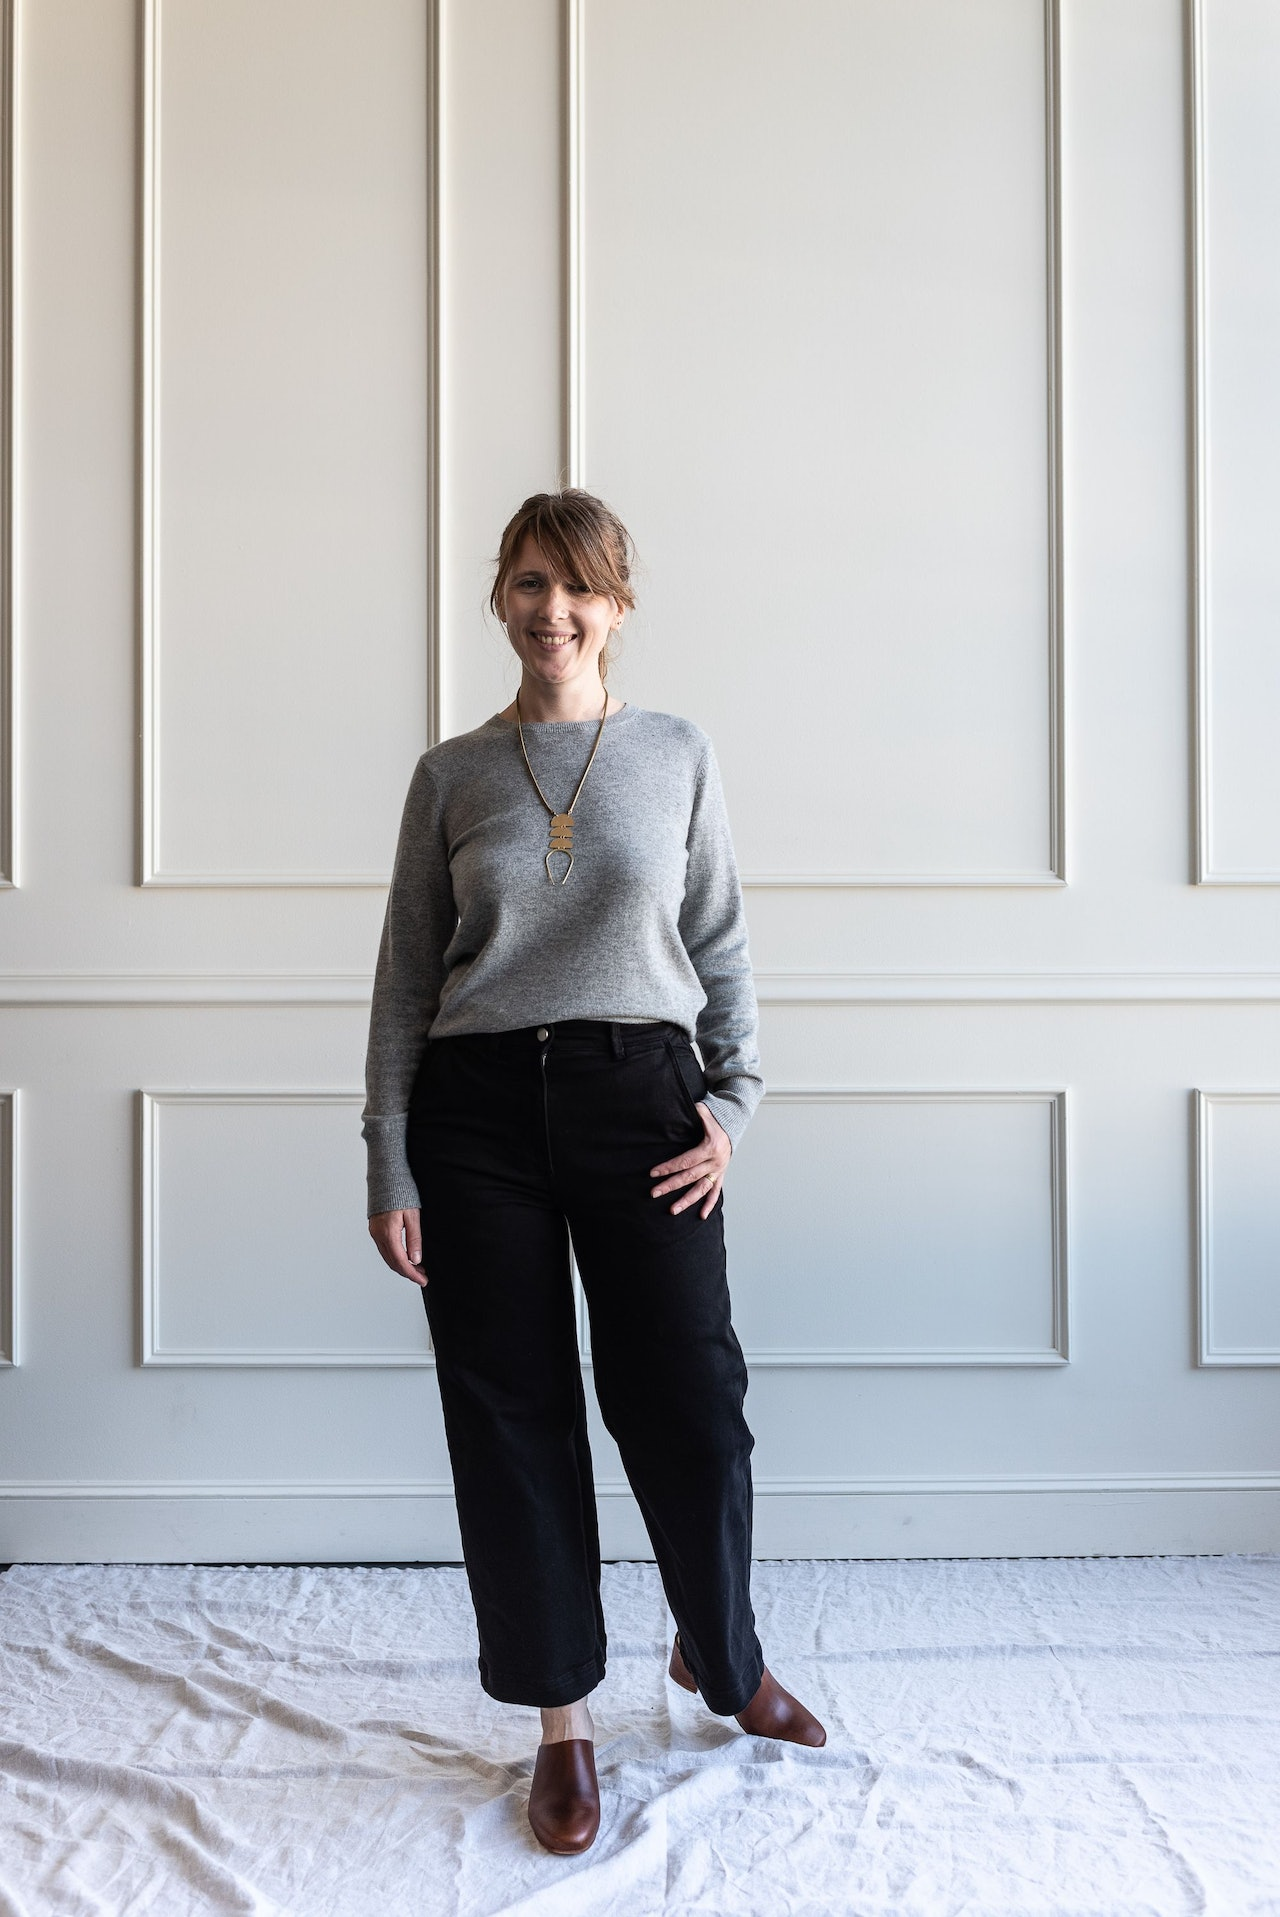 Fall 10x10 Day 8 Look - Everlane Black Cashmere Sweater, Black Crop Pants & Nisolo Brandy Mules by Conscious by Chloé